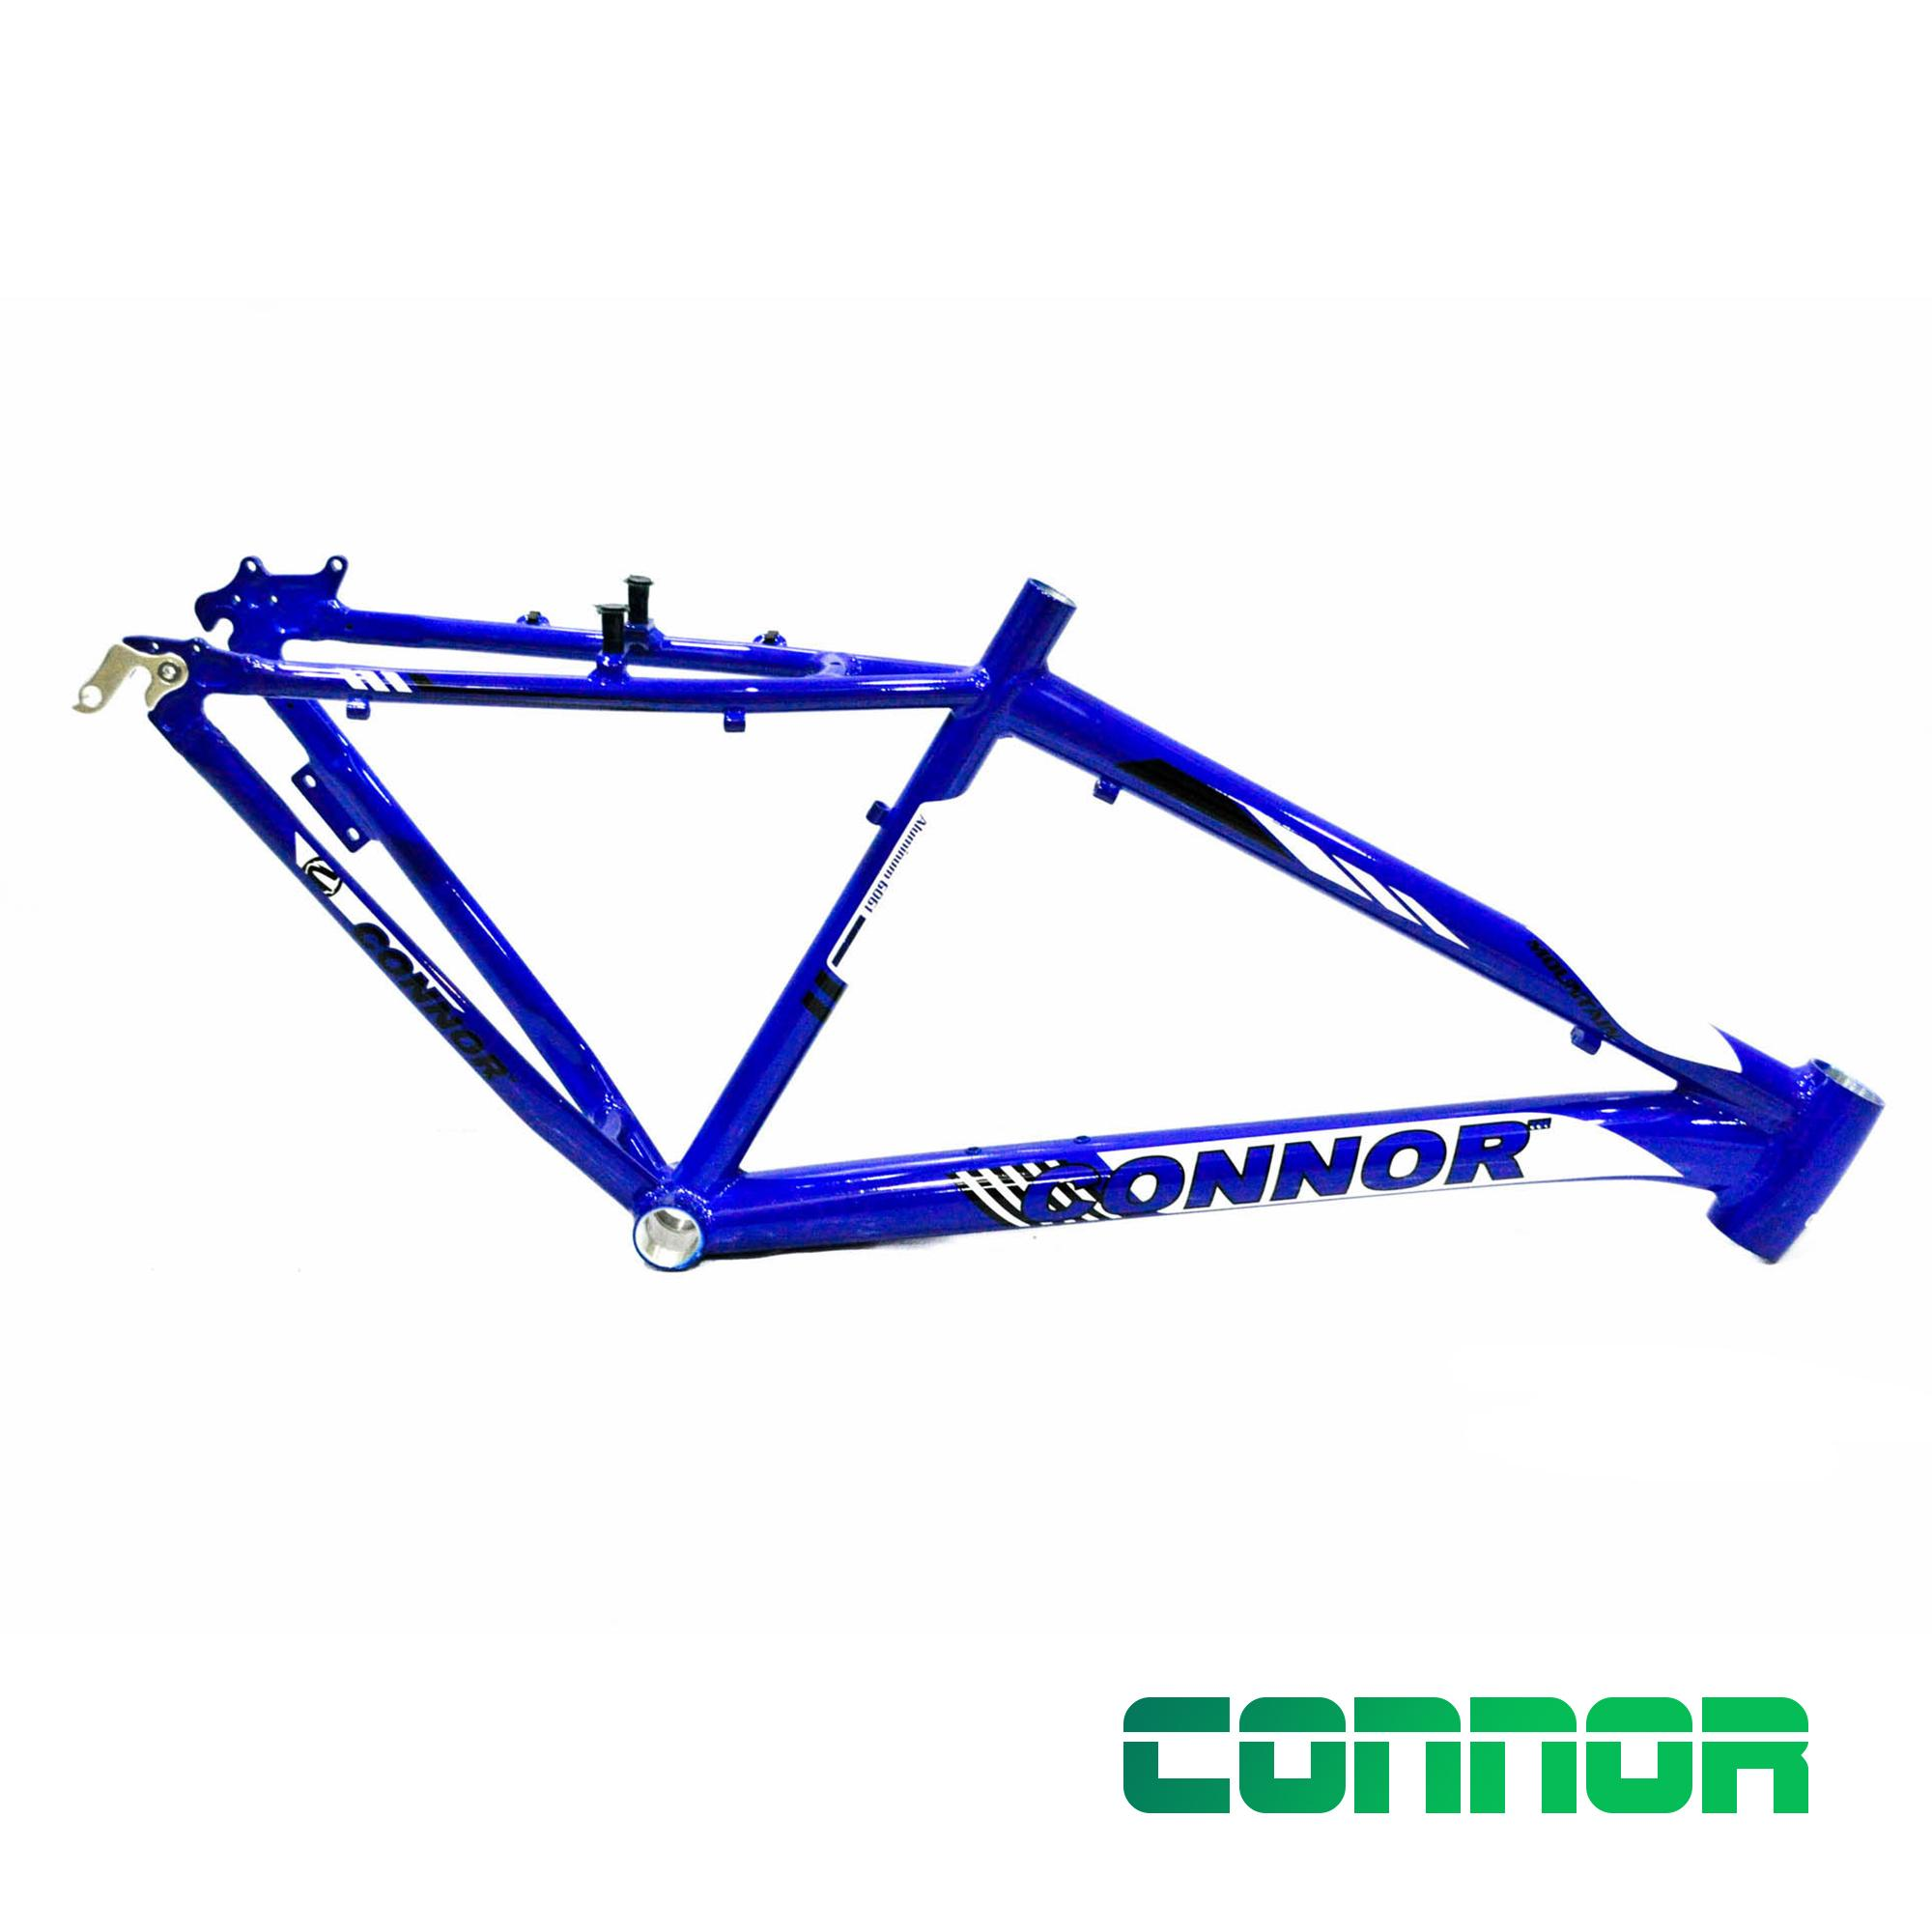 672e7d435e7 Bike Frames for sale - Cycling Frames Online Deals & Prices in ...